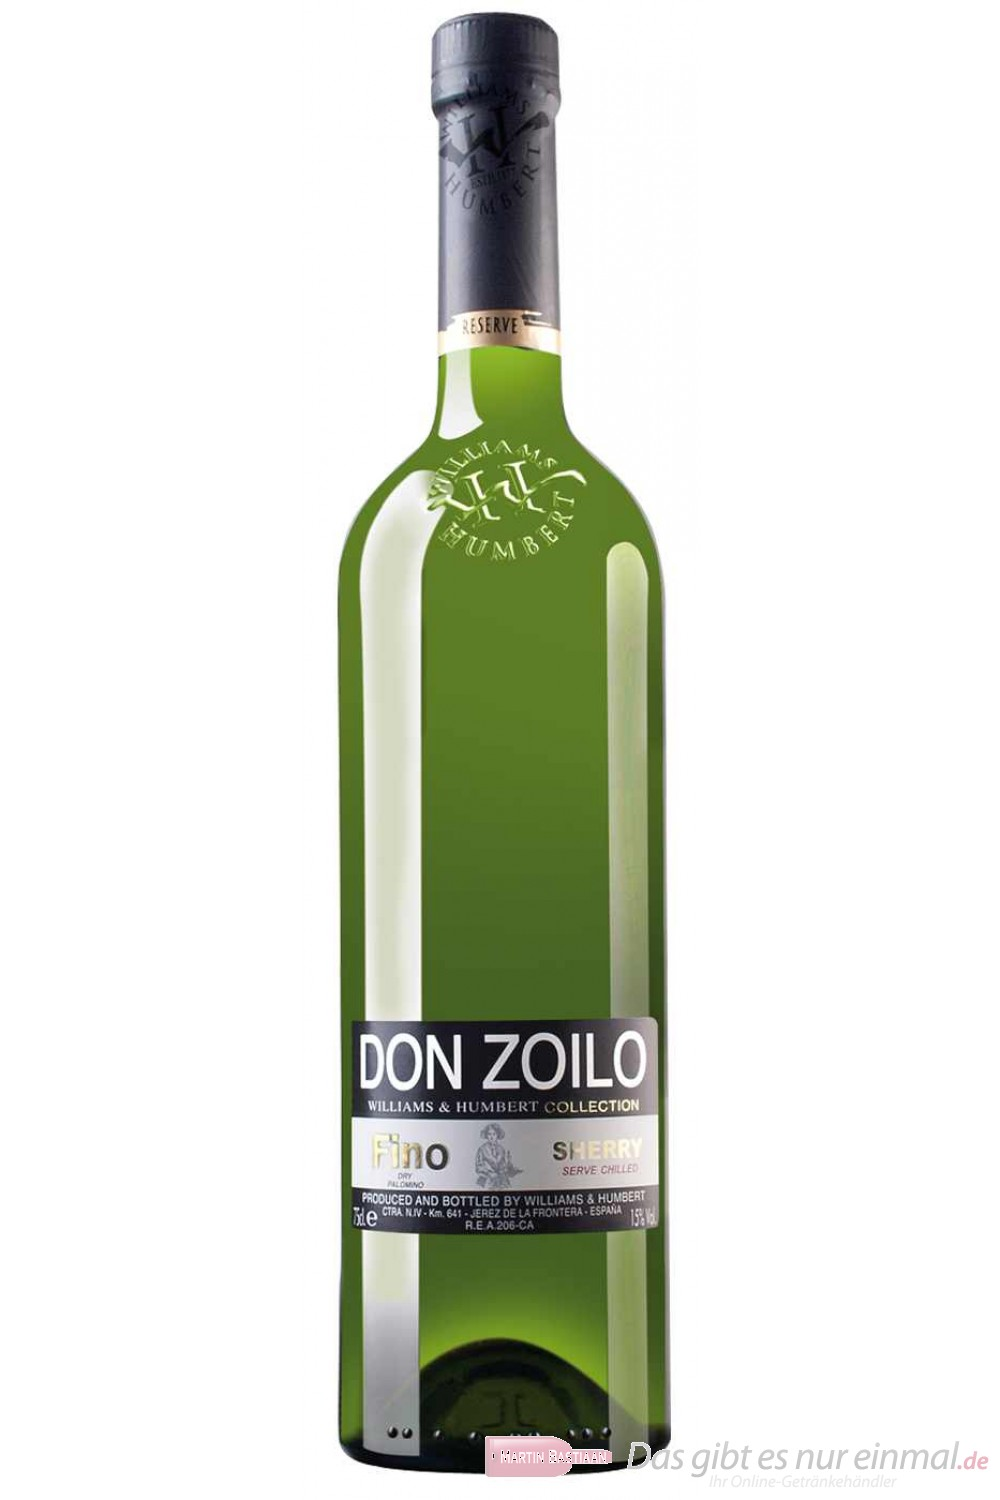 Don Zoilo Williams & Humbert Collection Fino Sherry